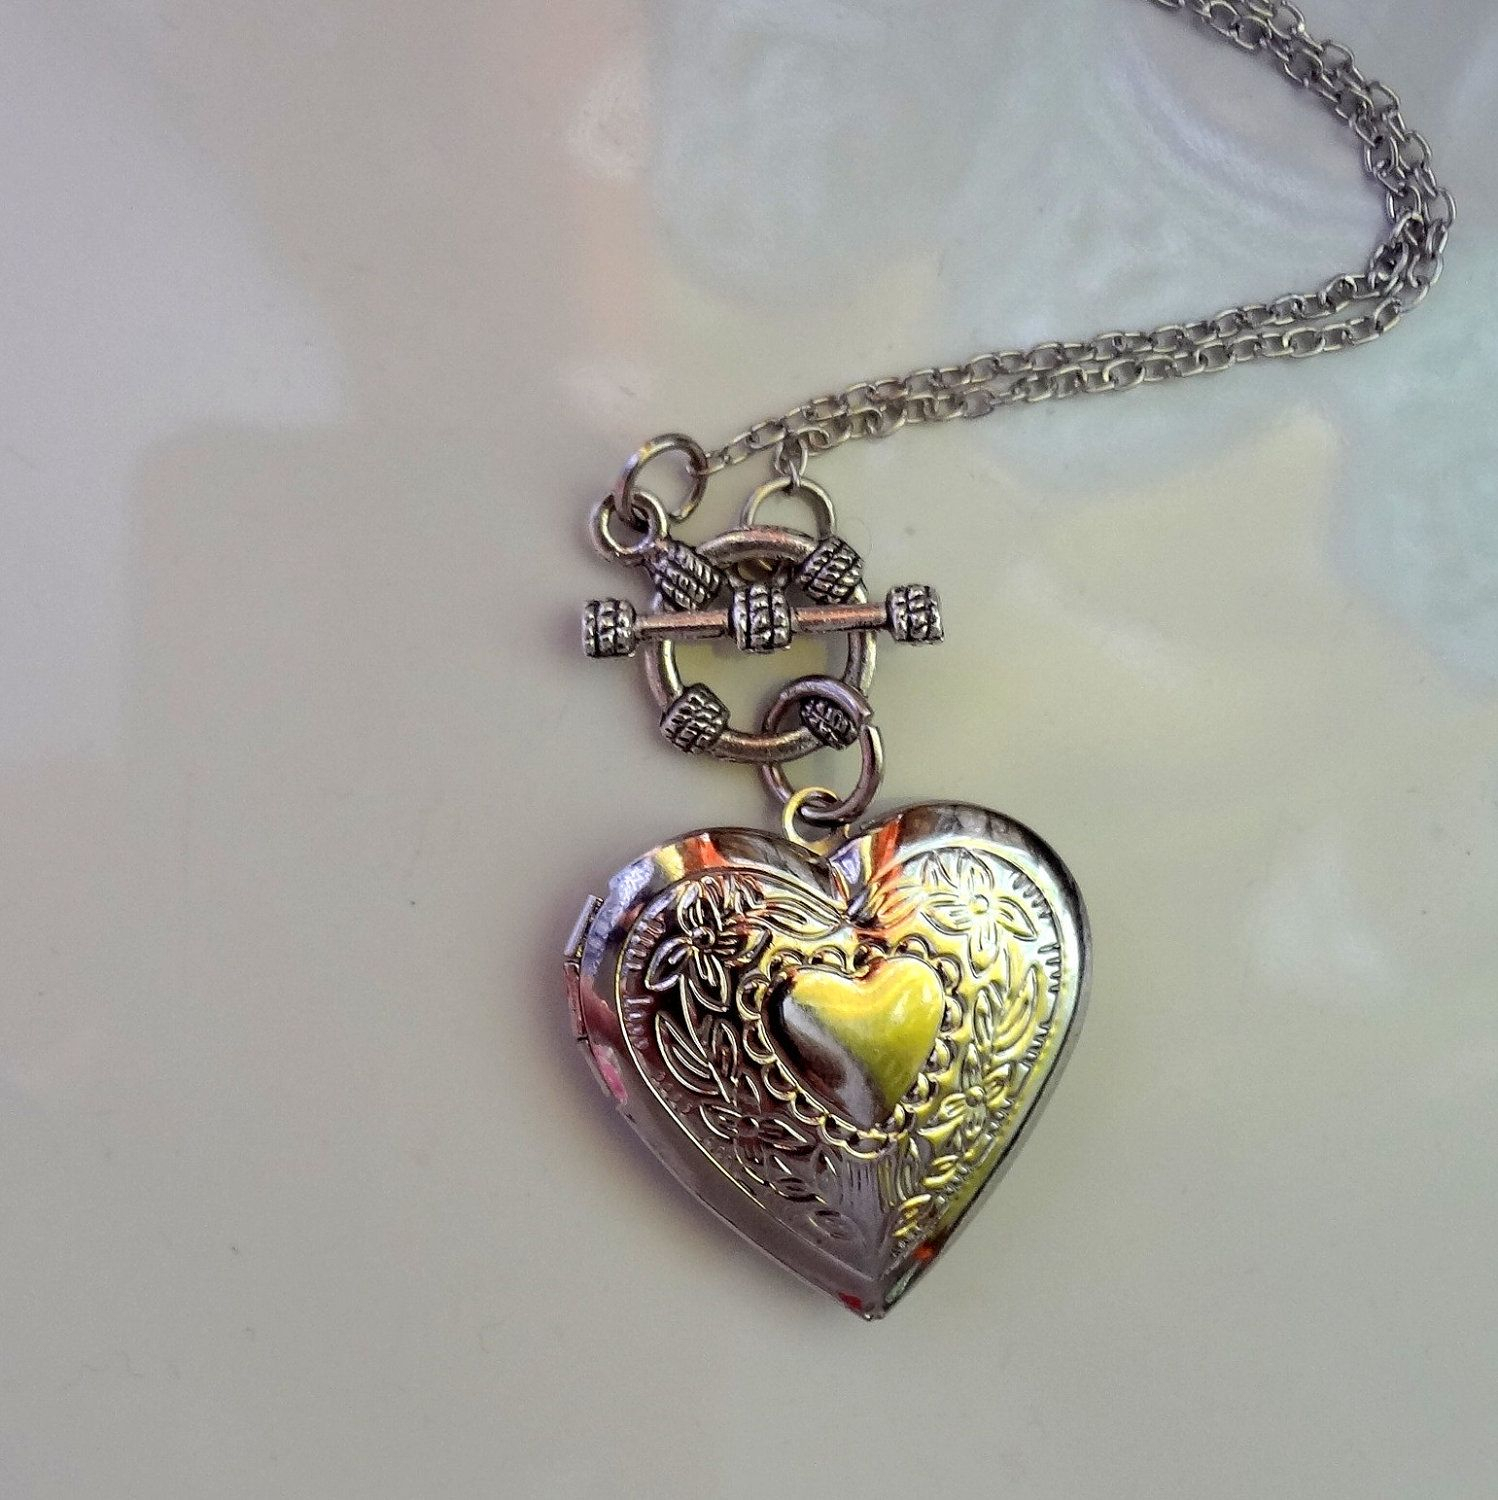 Heart Necklace, Heart Locket Necklace,holiday Gift | Random | Heart Intended For 2020 Heart Locket Plate Necklaces (View 18 of 25)